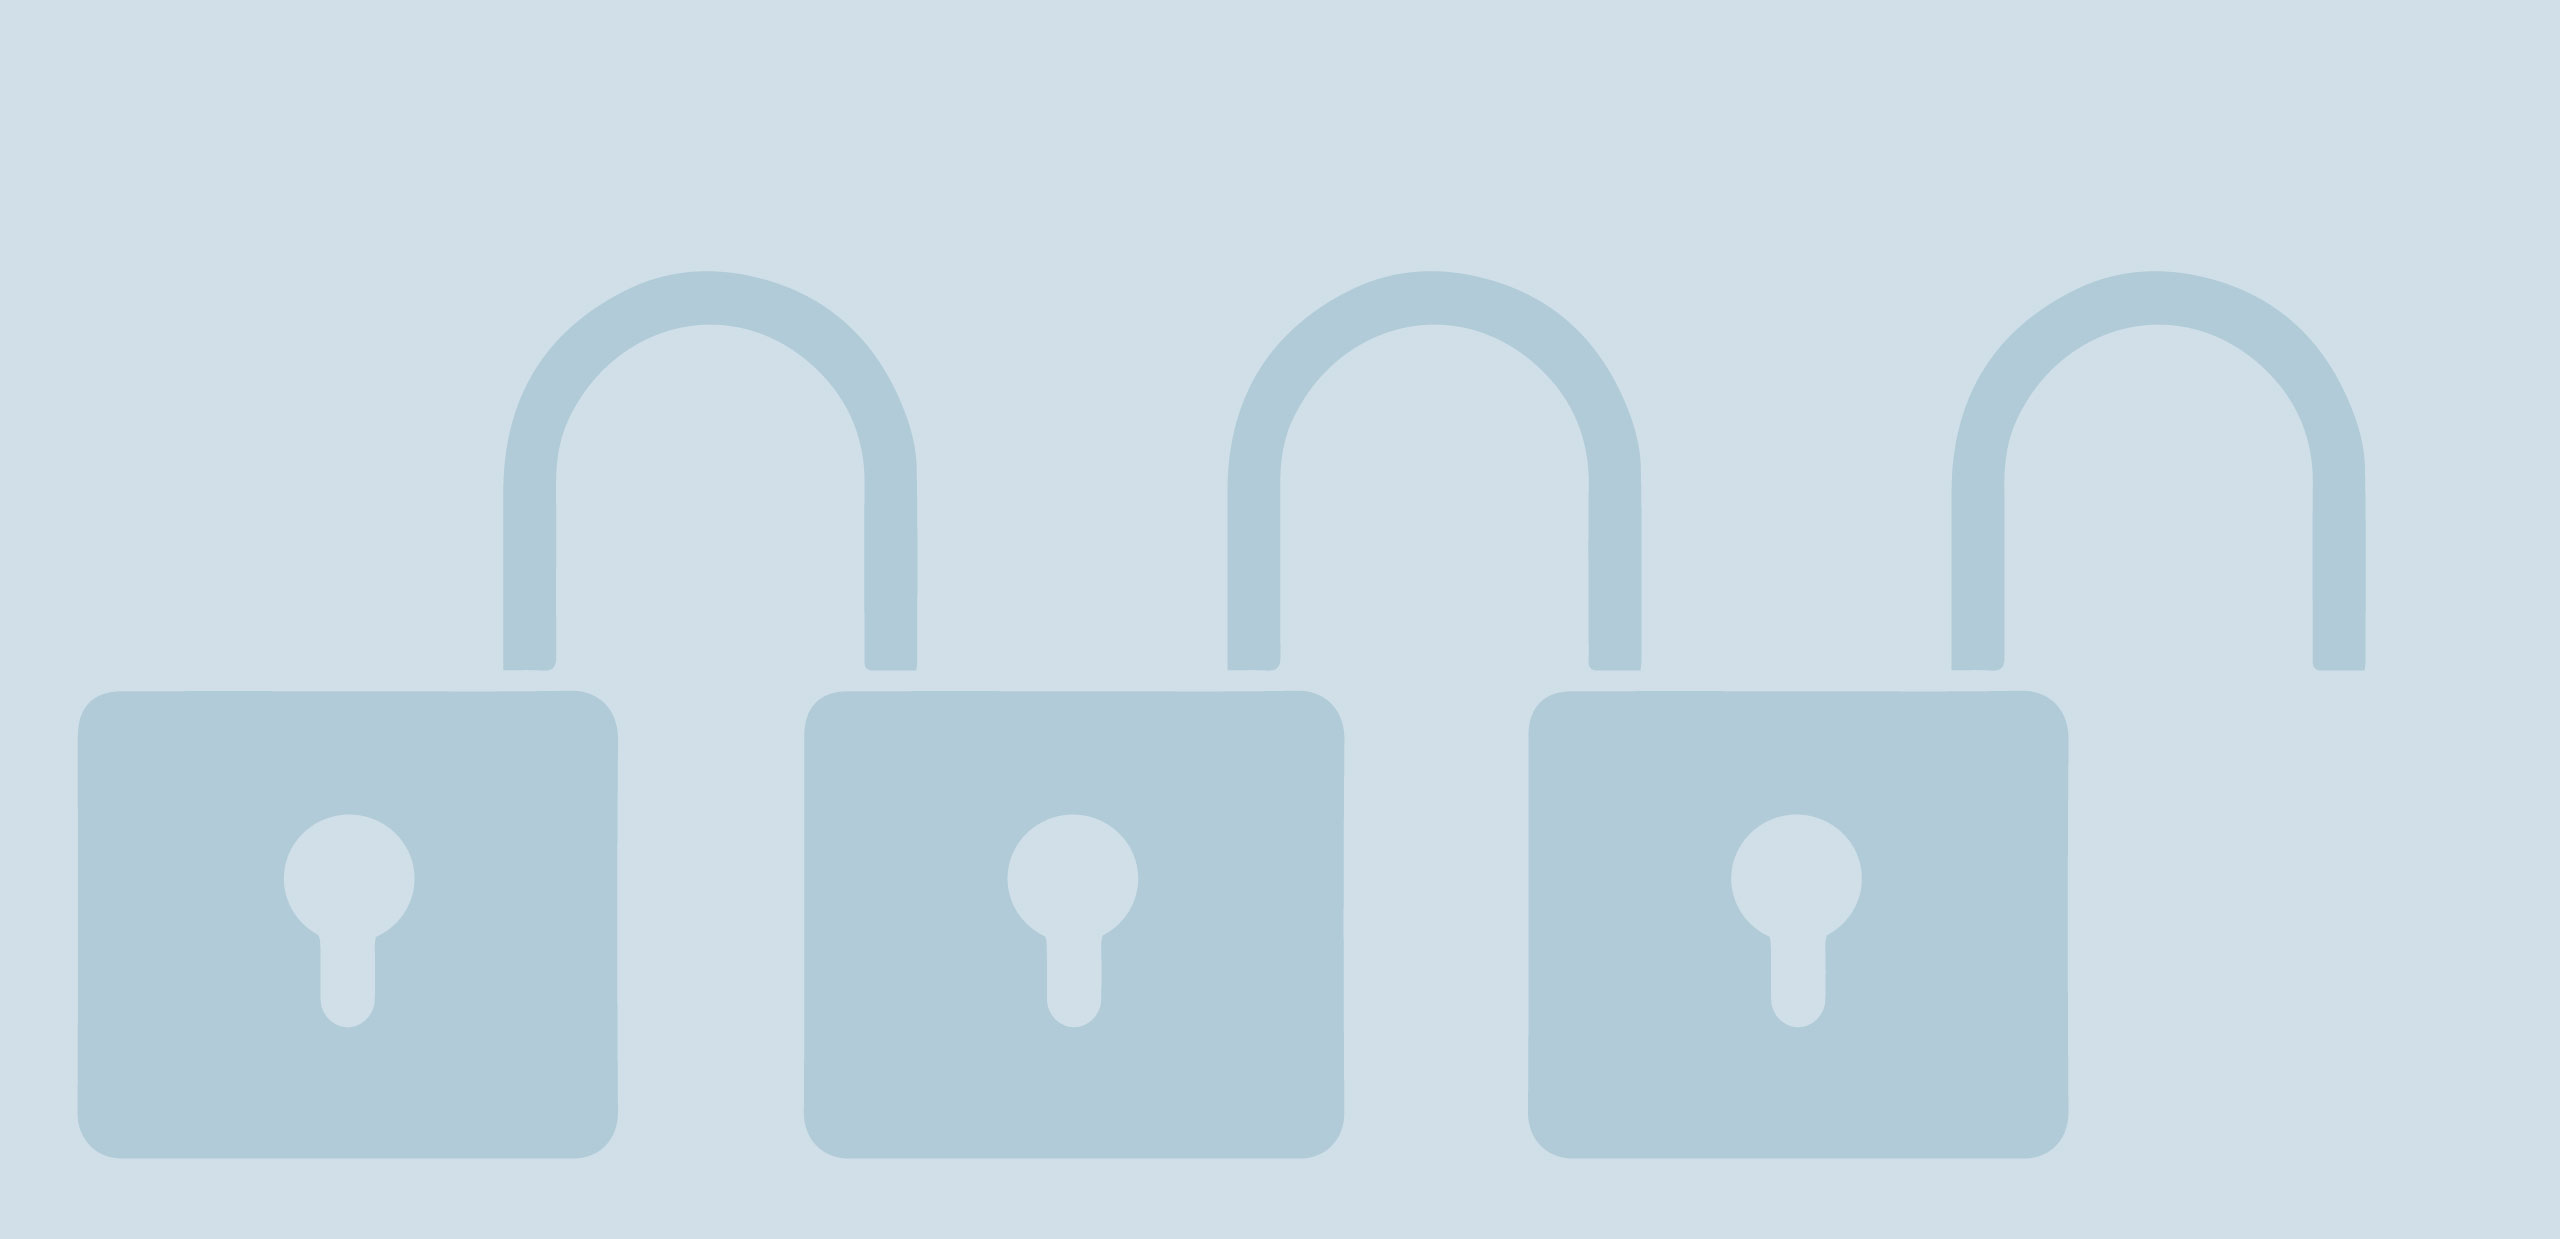 How secure is blockchain really? - MIT Technology Review